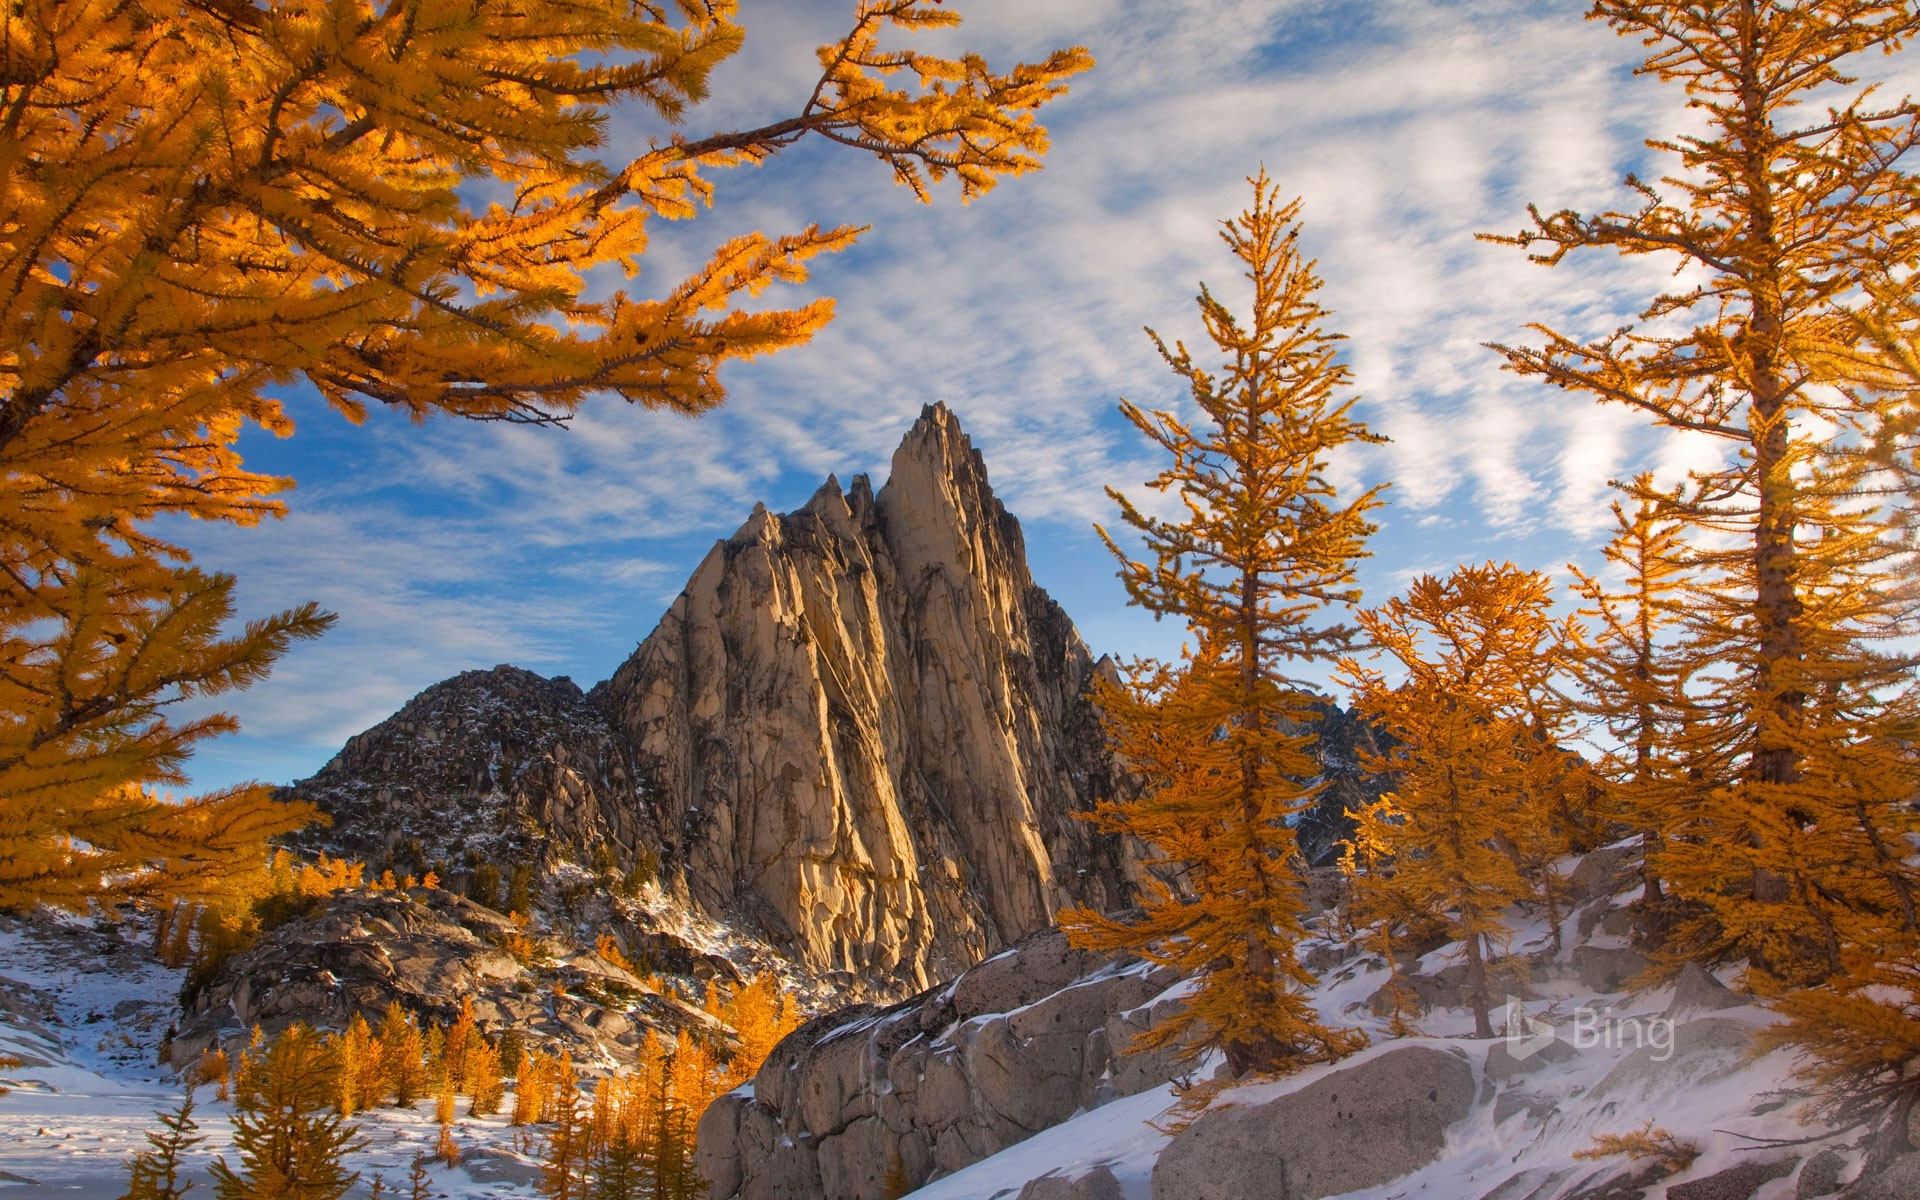 Prusik Peak in the Enchantments of Washington state, USA